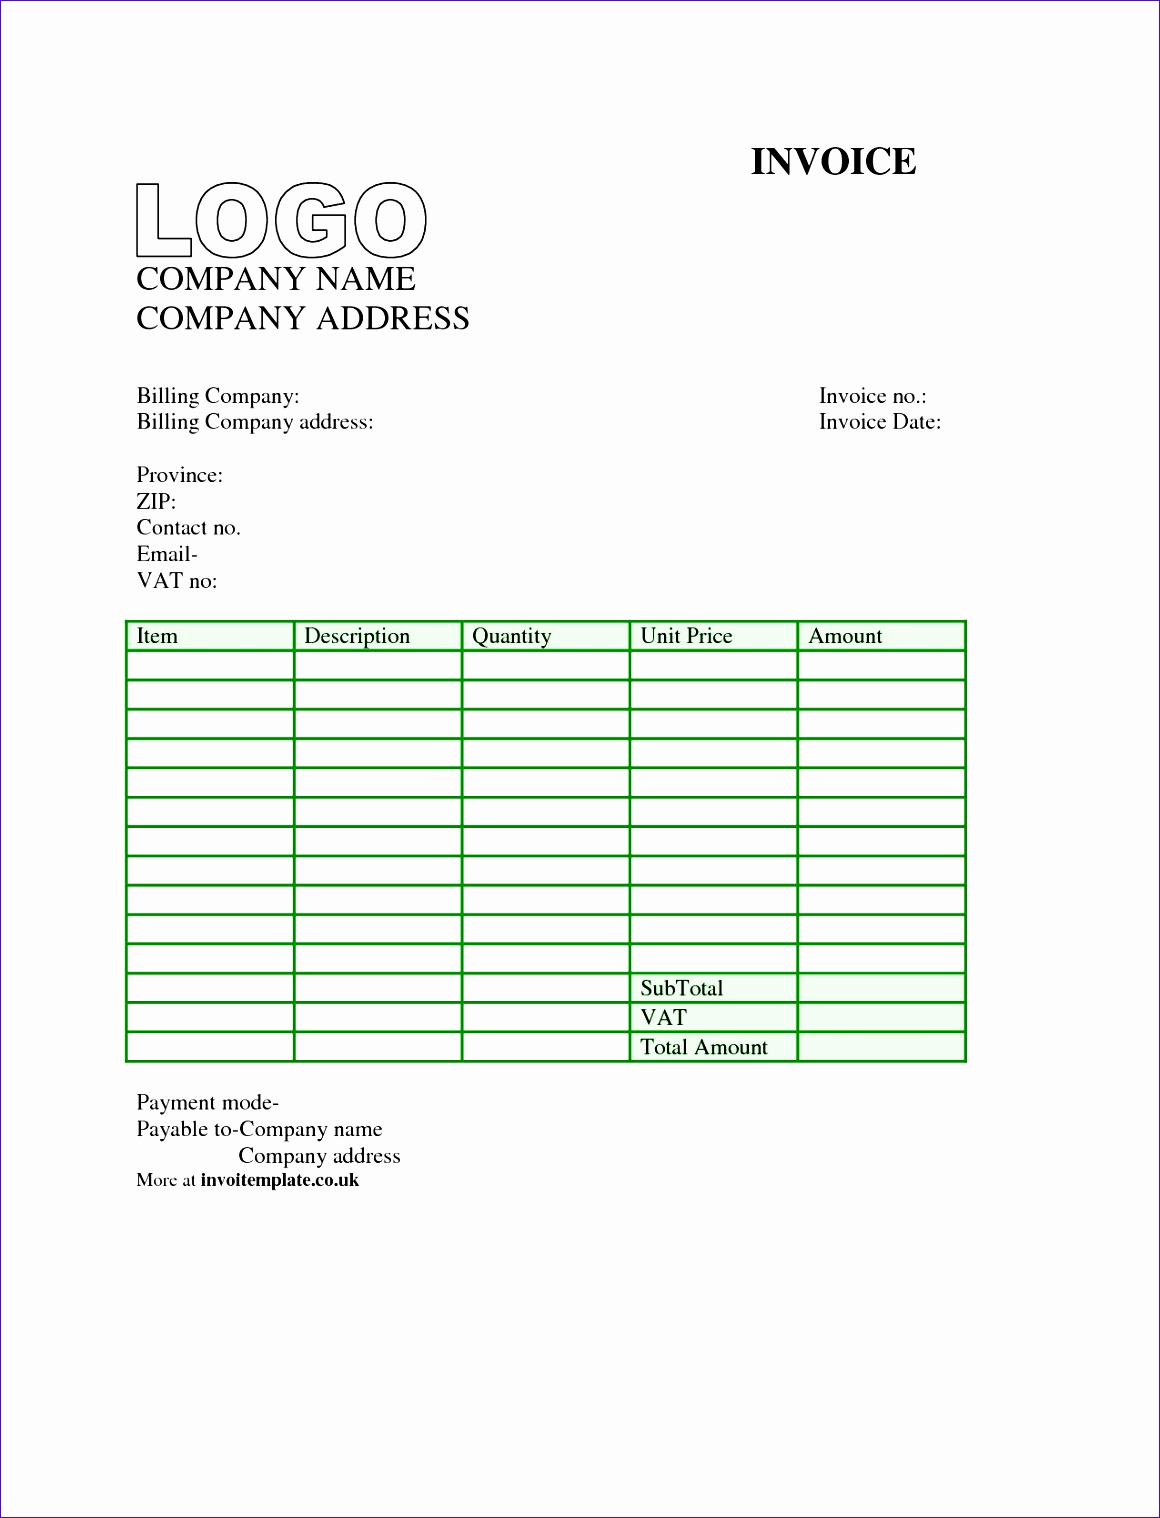 Free Invoice Template for Mac Best Of 14 Invoice Template Nz Excel Exceltemplates Exceltemplates